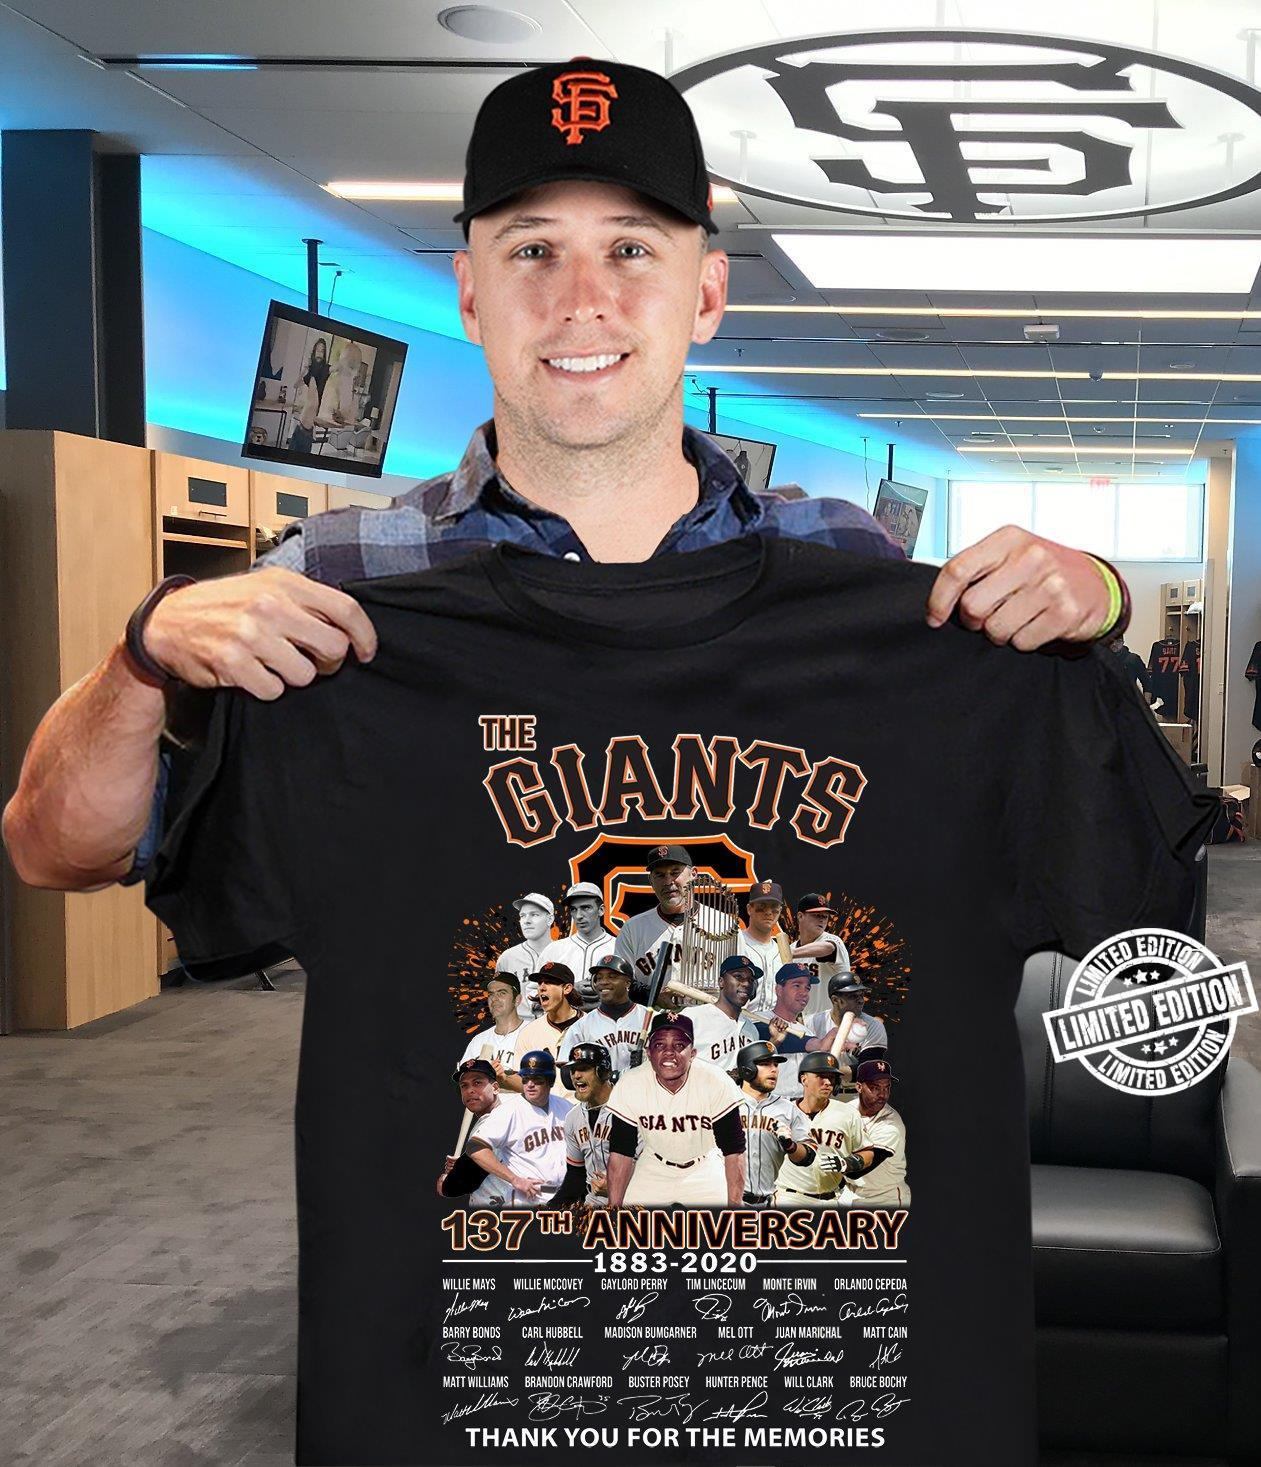 The Giants 13th Annivesary shirt